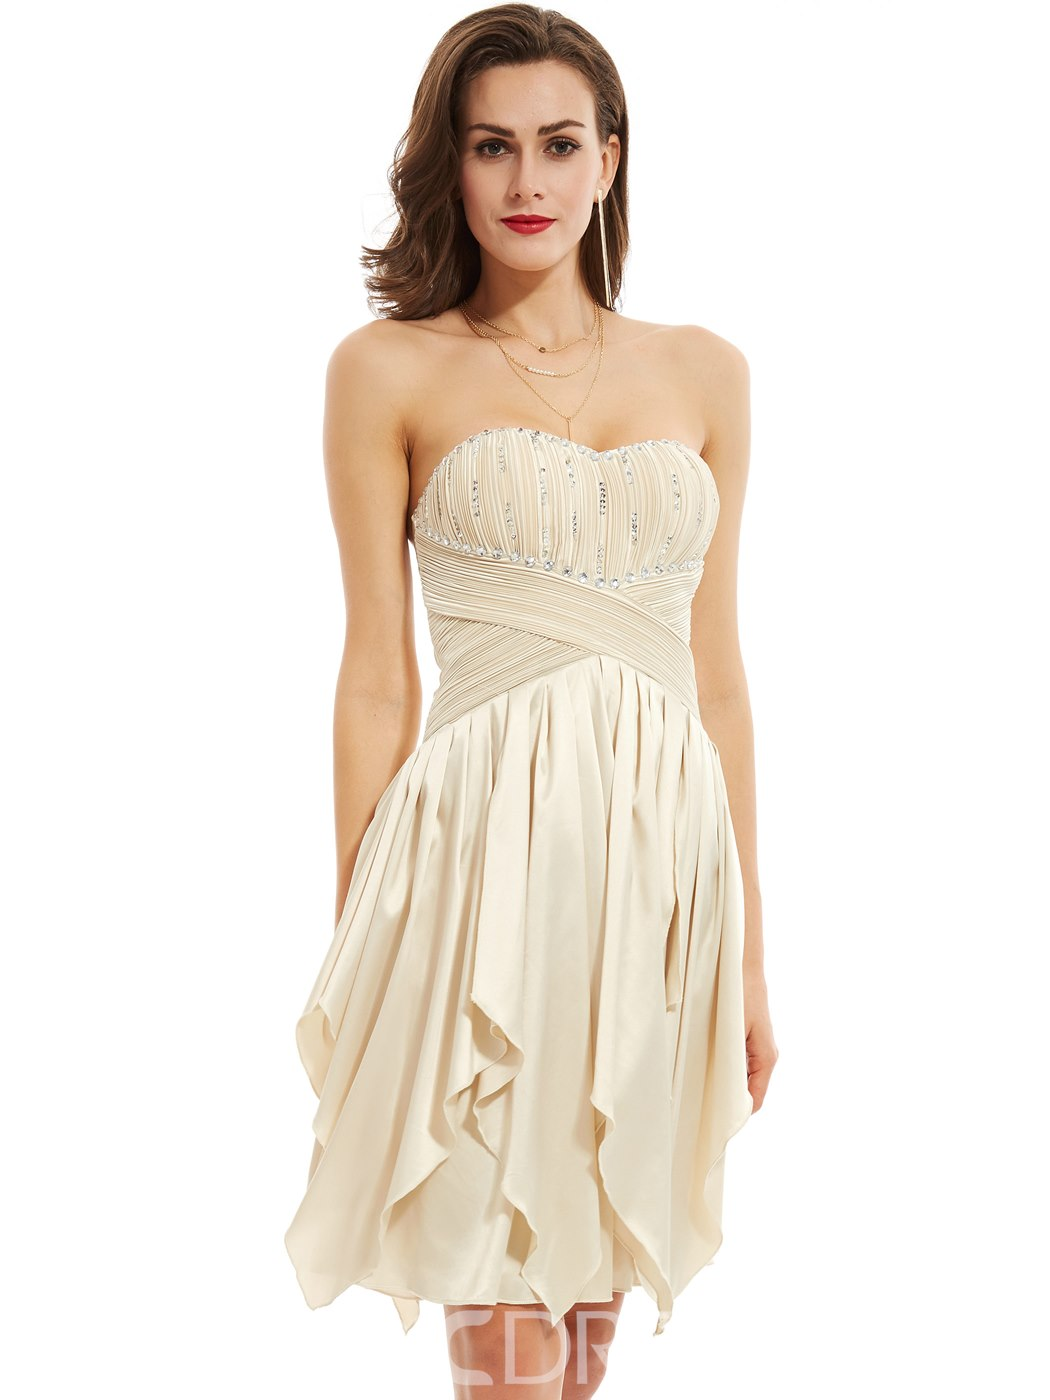 Ericdress Sweetheart Beaded A Line Cocktail Dress With Lace-Up Back